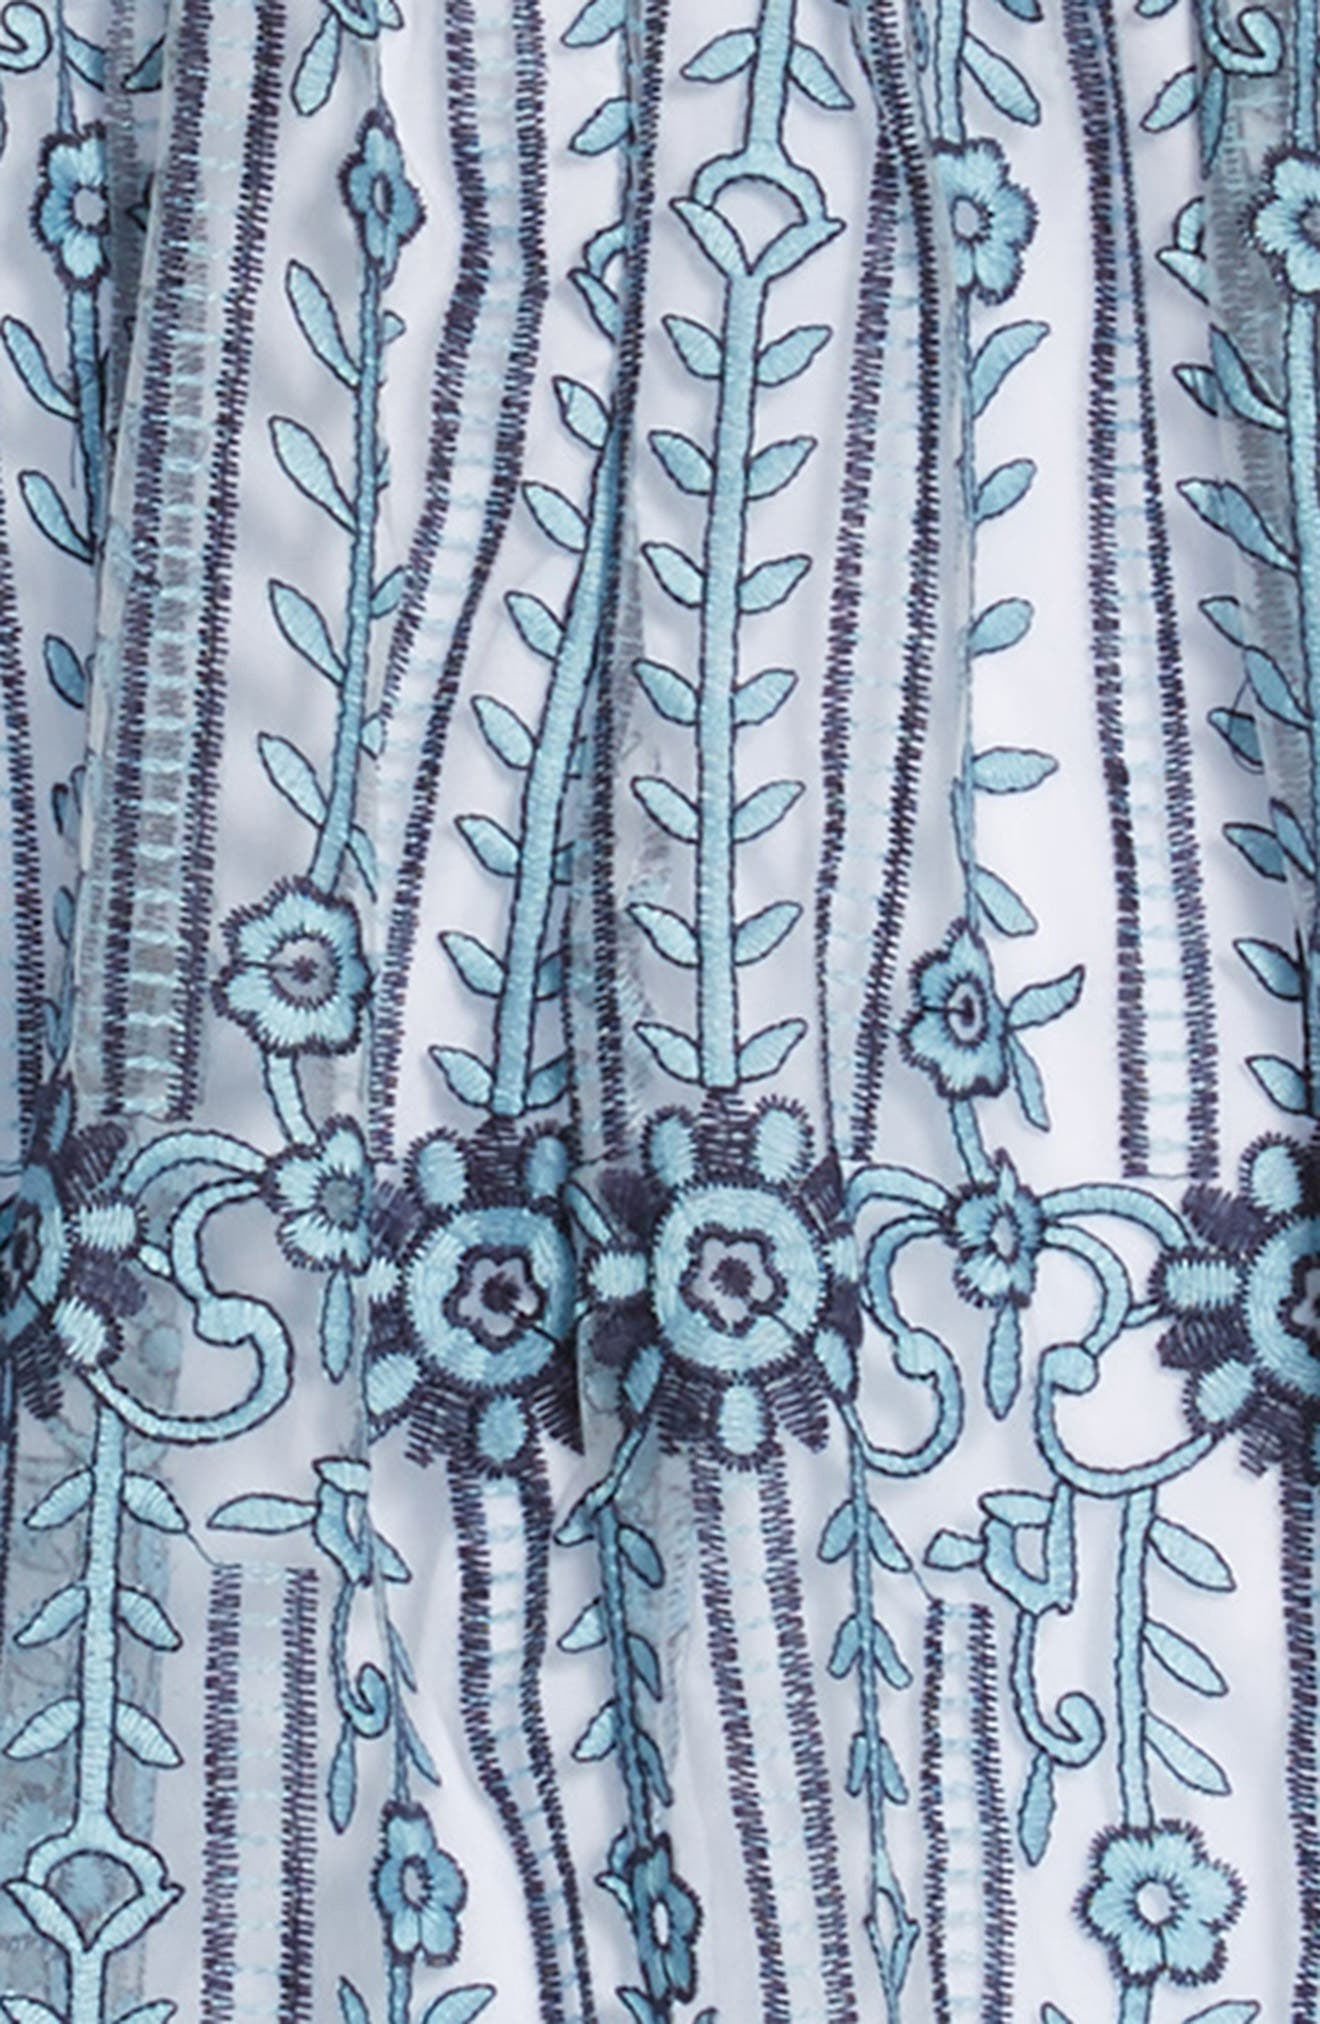 Embroidered Maxi Dress,                             Alternate thumbnail 3, color,                             400